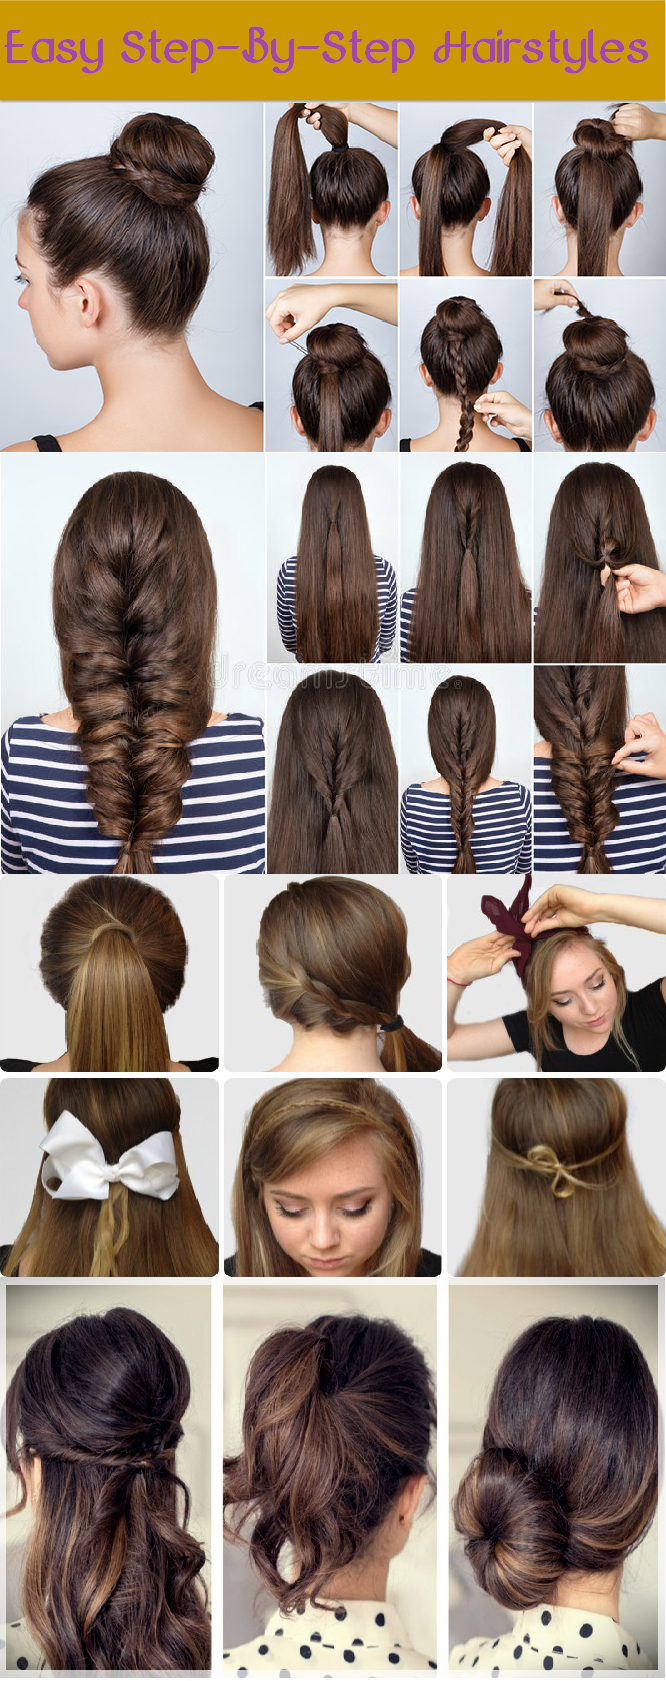 easy-step-by-step hairstyles